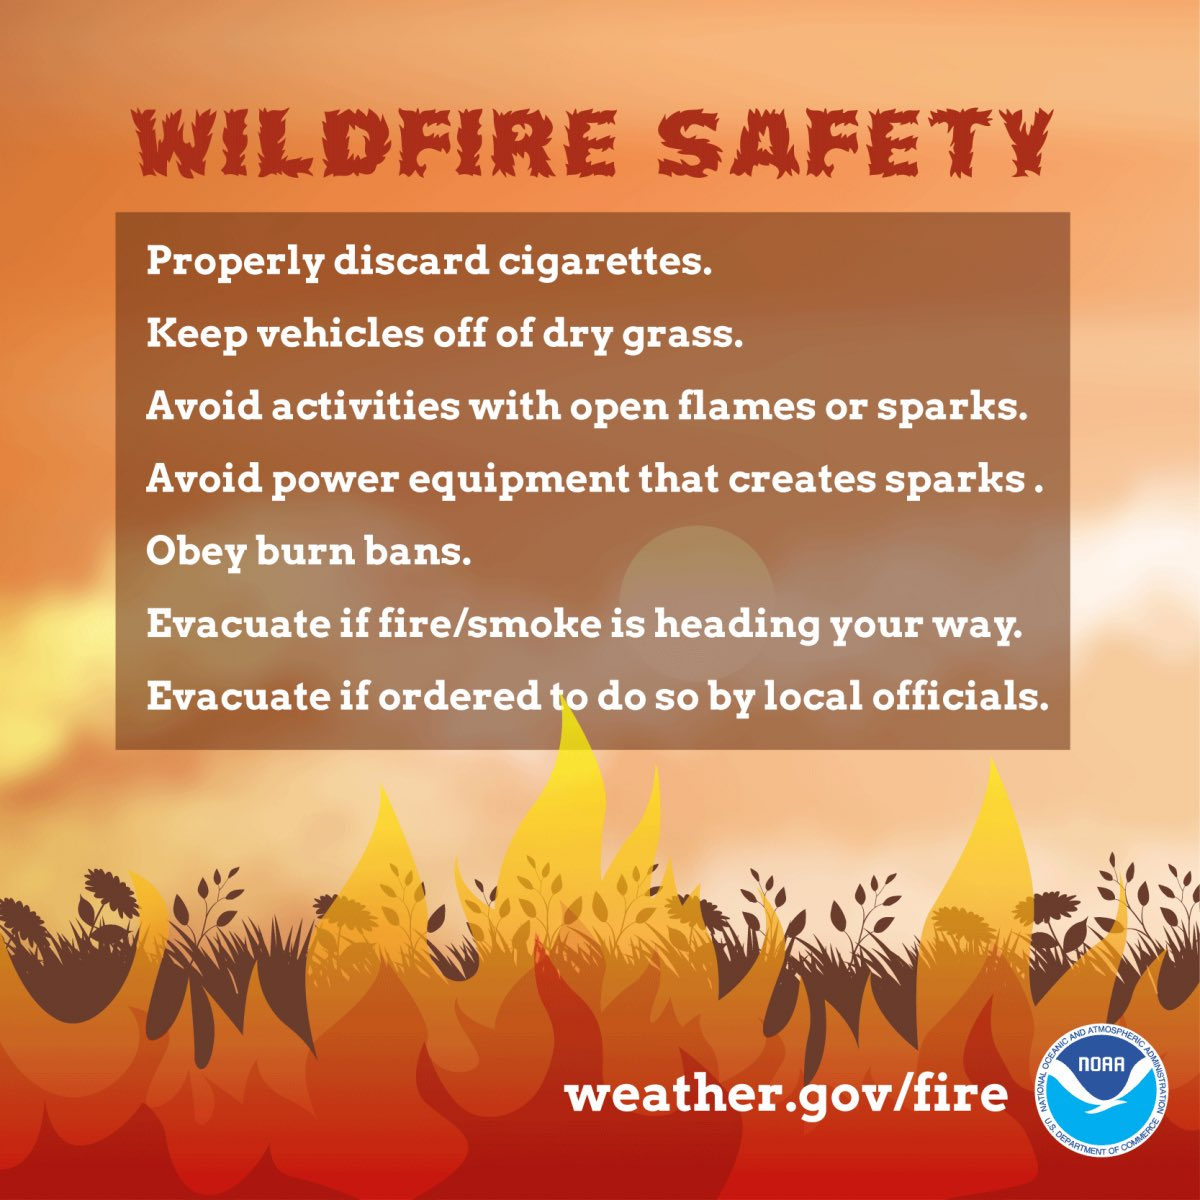 Advisory: Fire Weather Watch in effect in #Oakland hills from Saturday, 11:00 AM PDT until Monday, 8:00 AM PDT, per the @NWSBayArea. https://t.co/tHpA2qjCvO